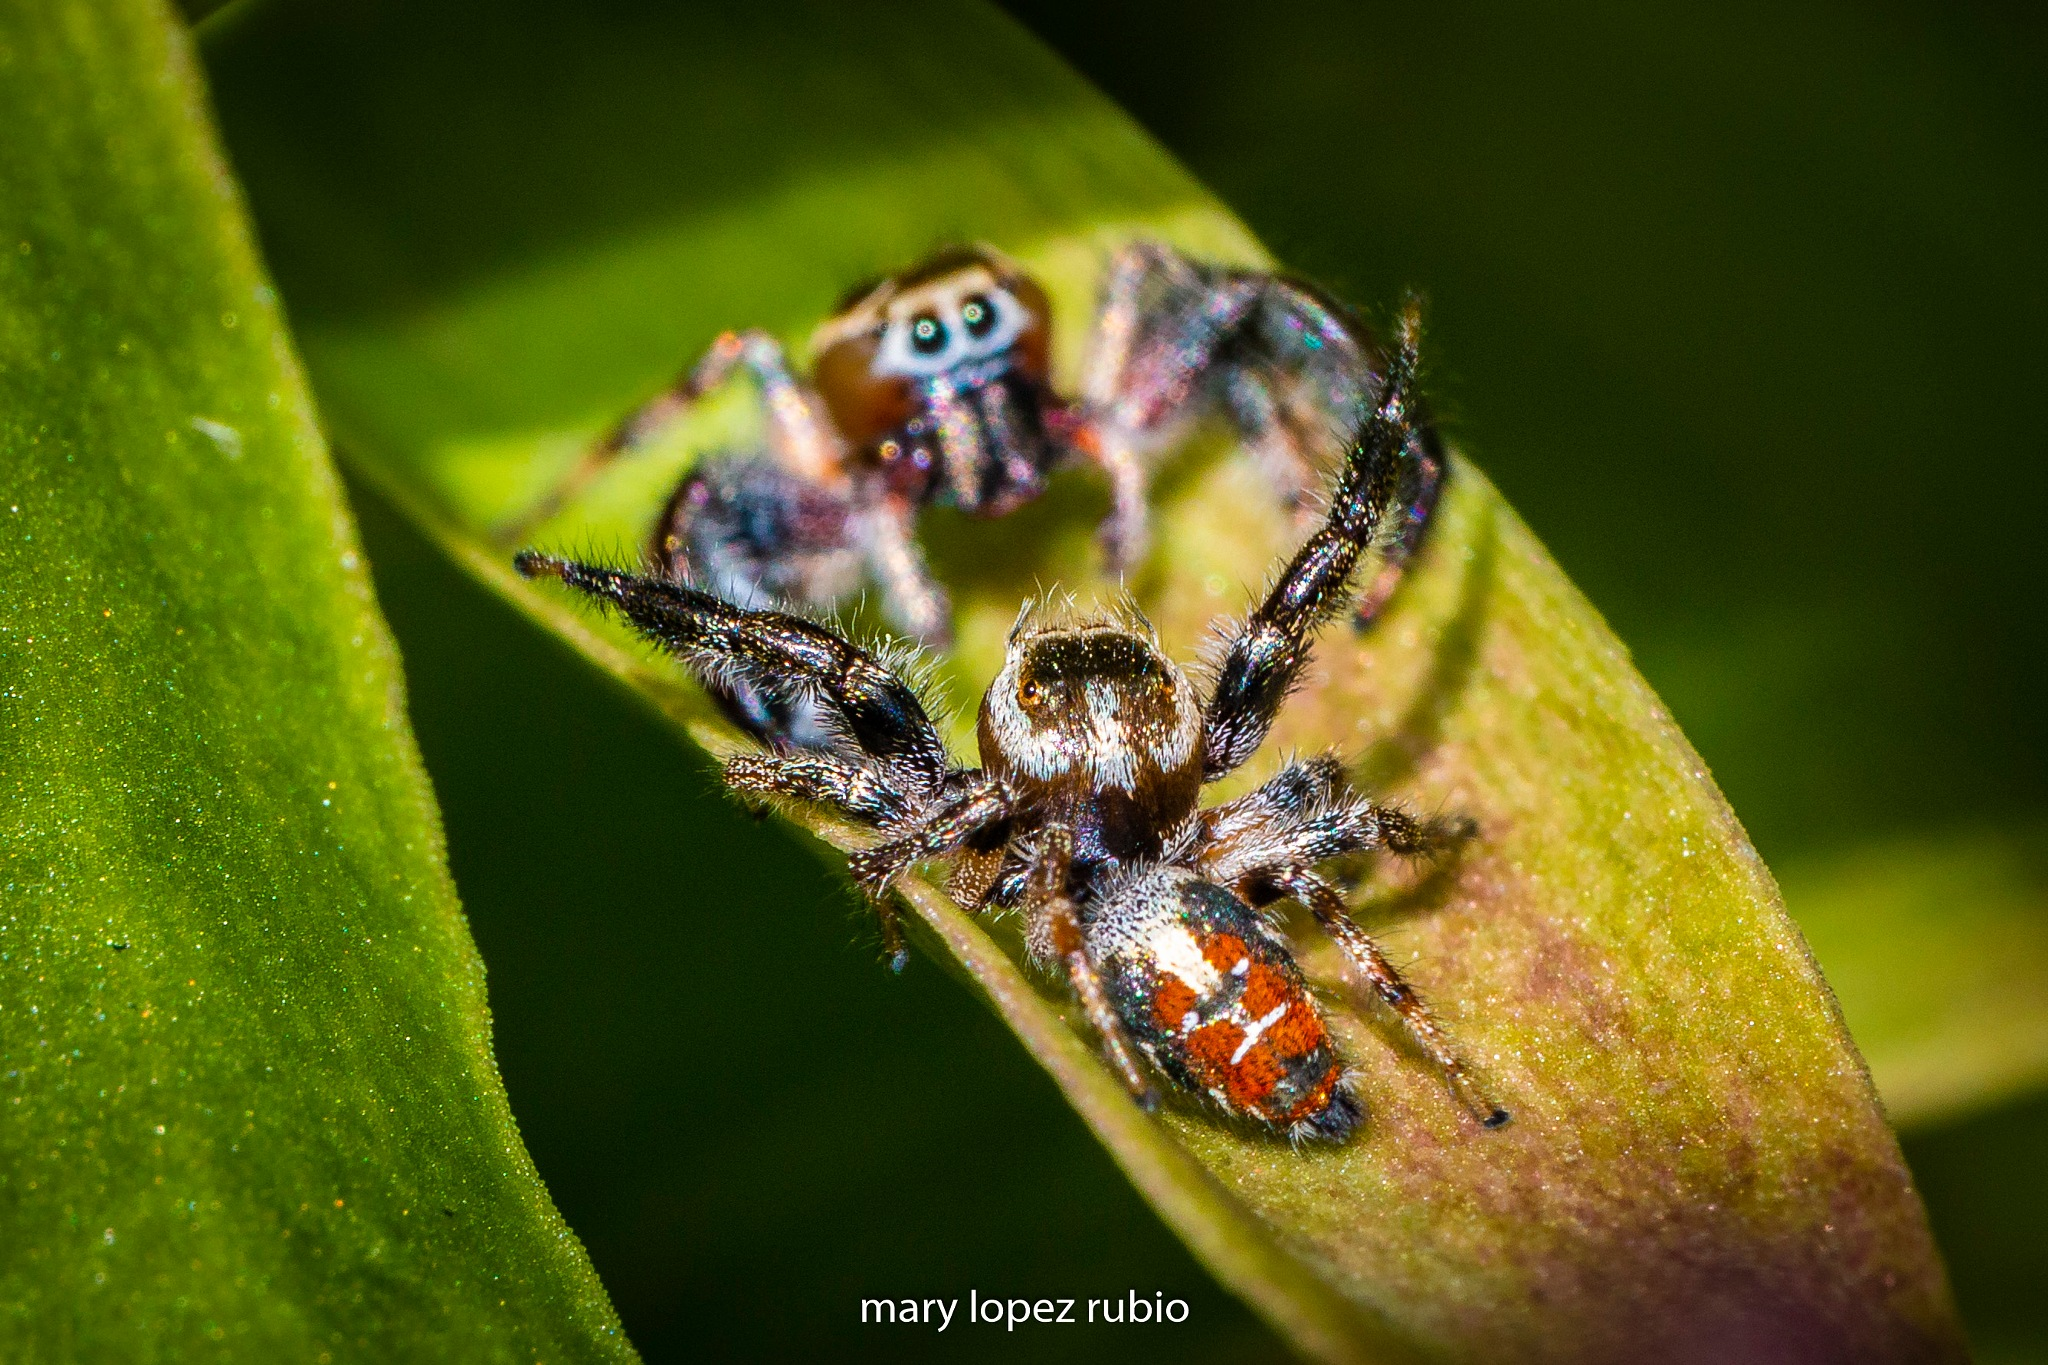 spider fight by Carmen